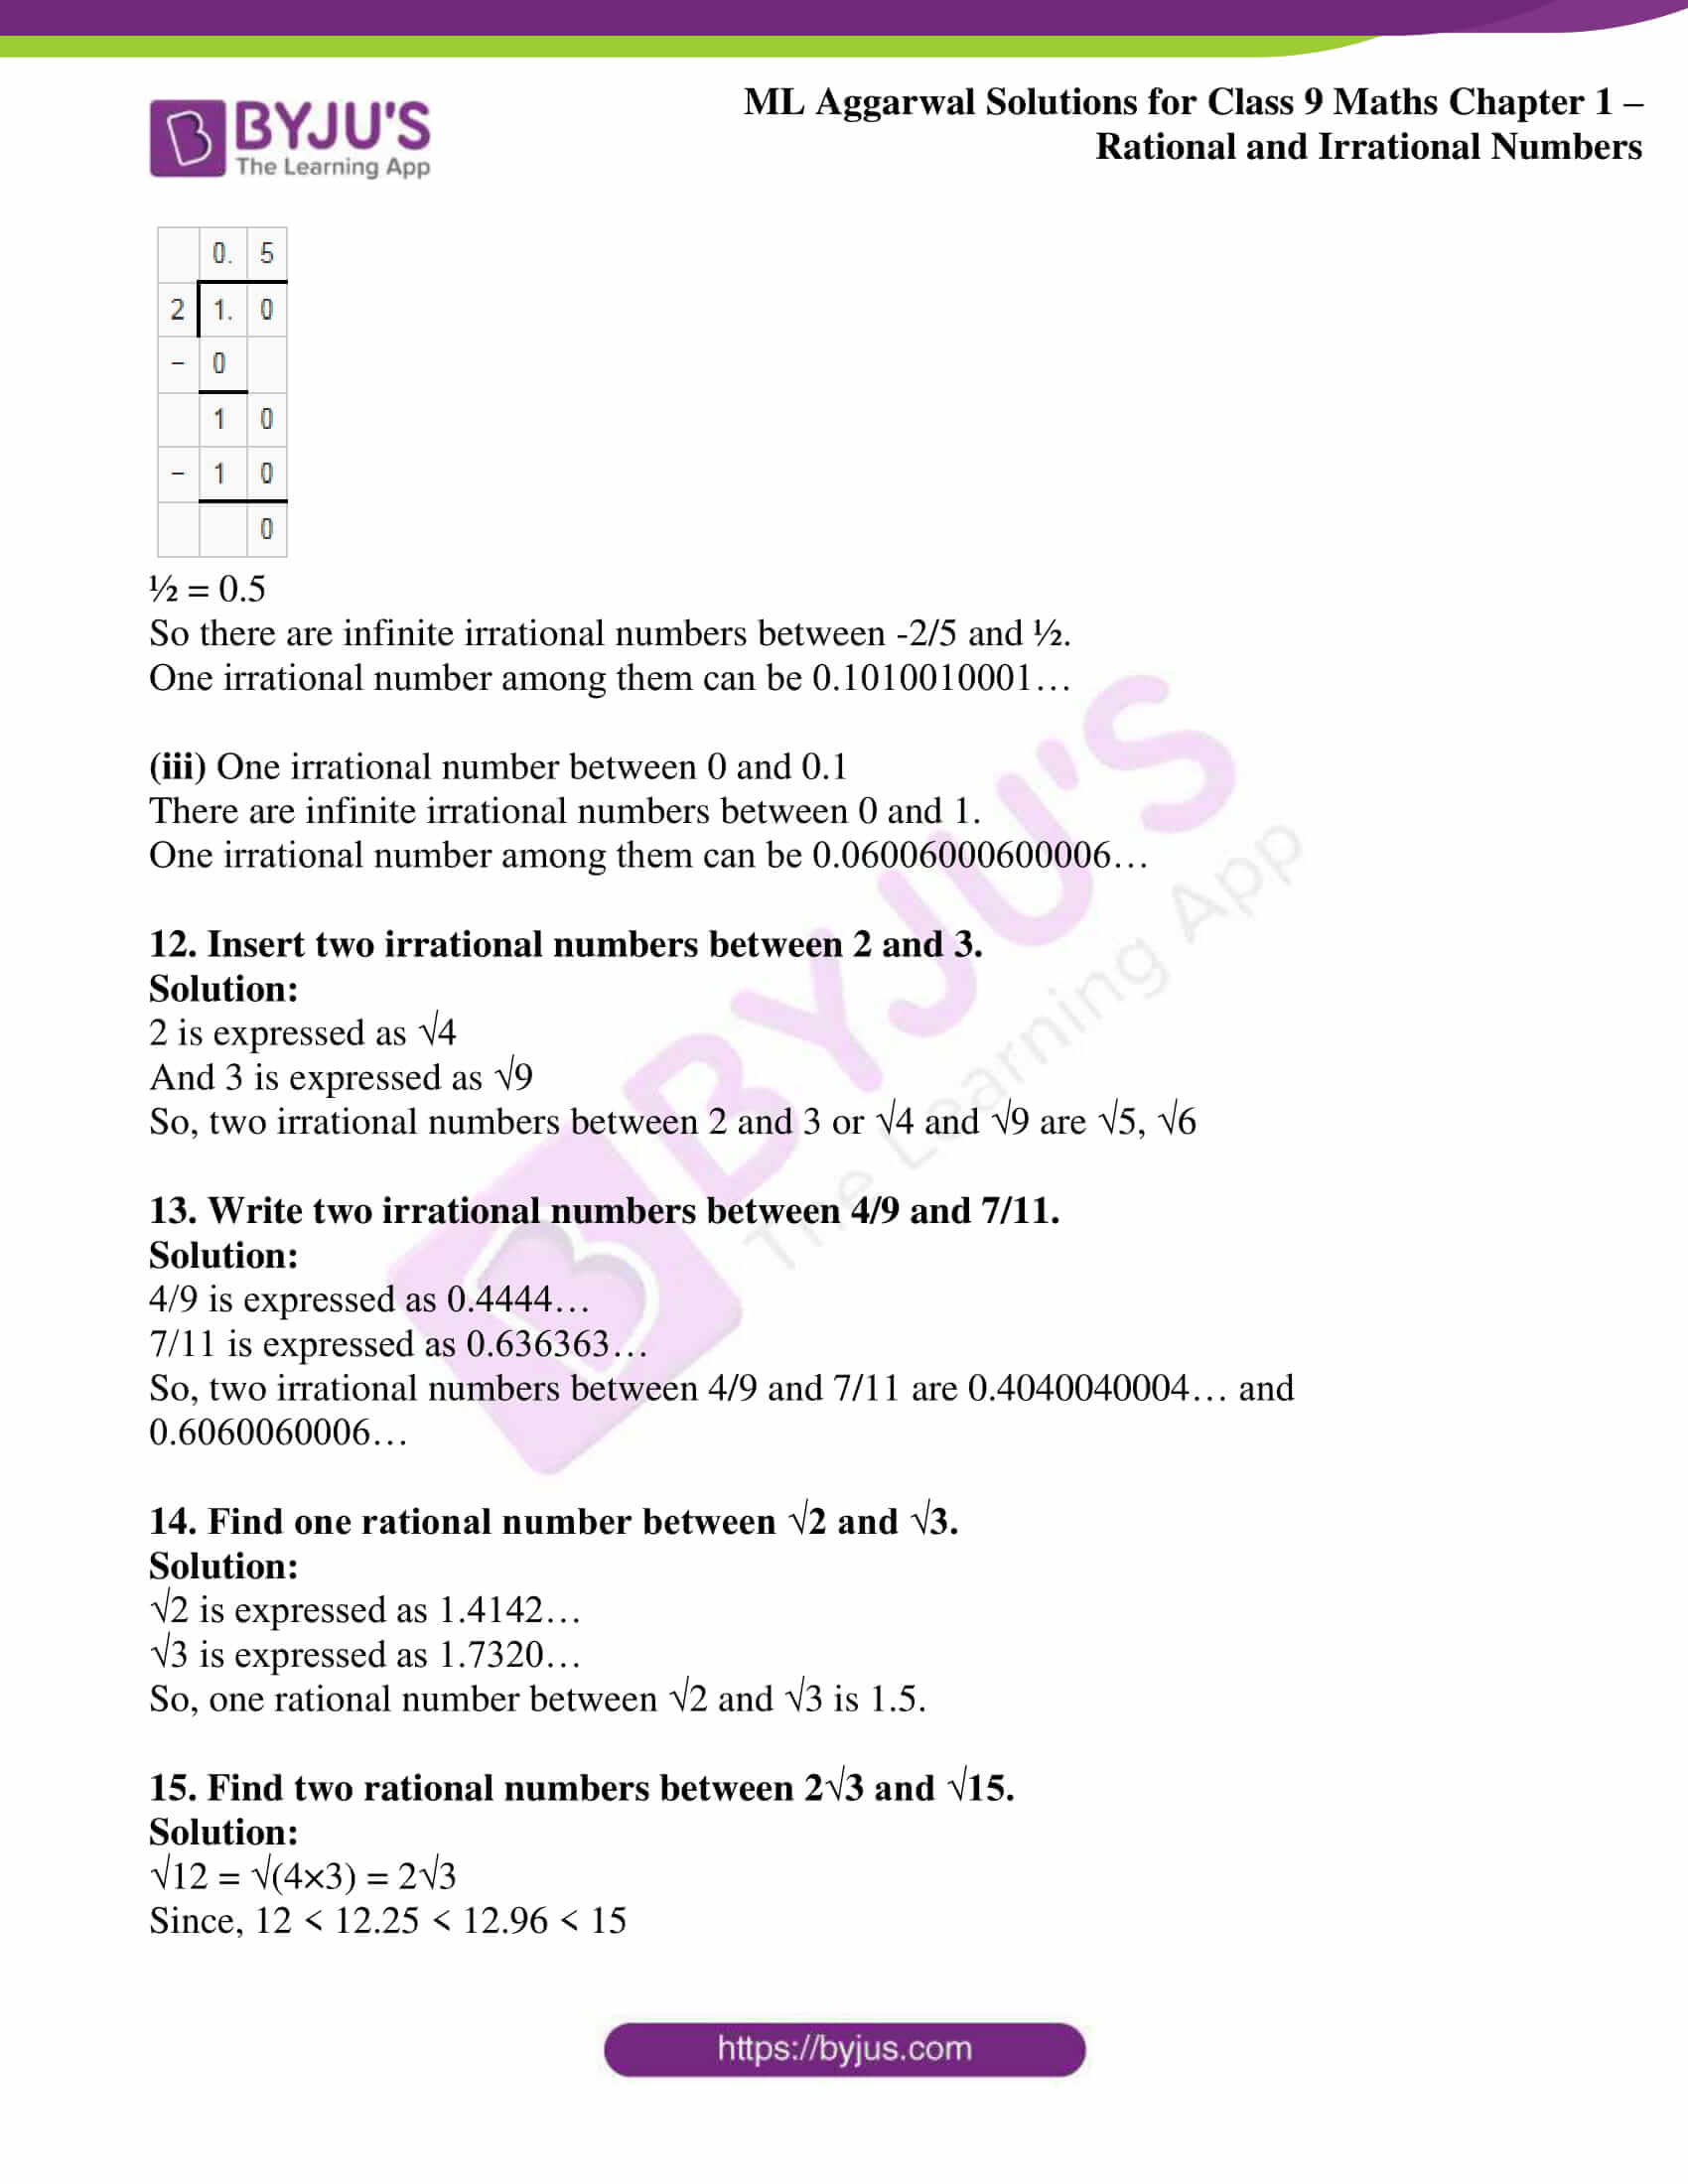 ml aggarwal solutions for class 9 maths chapter 1 35